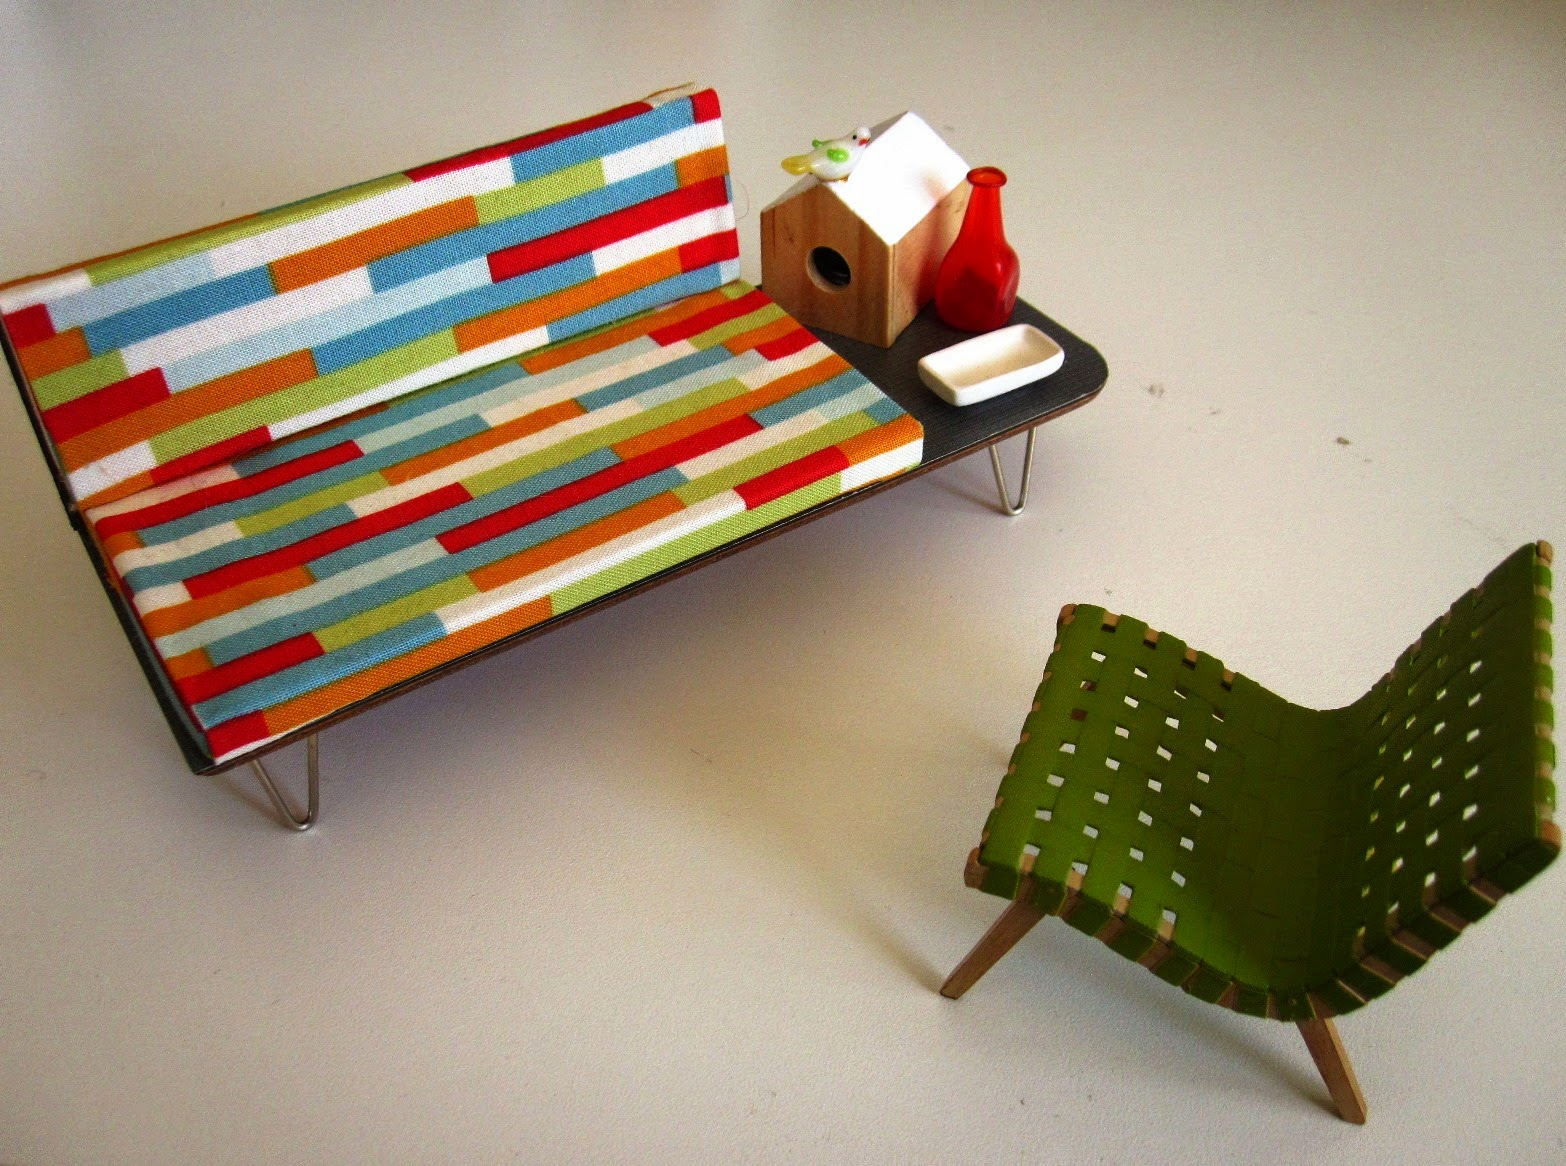 Mid century modern miniature sofa with attached coffee table and Jens Risom armchair, On the coffee table are mid century accessories including a bird house, bird, bottle and dish.